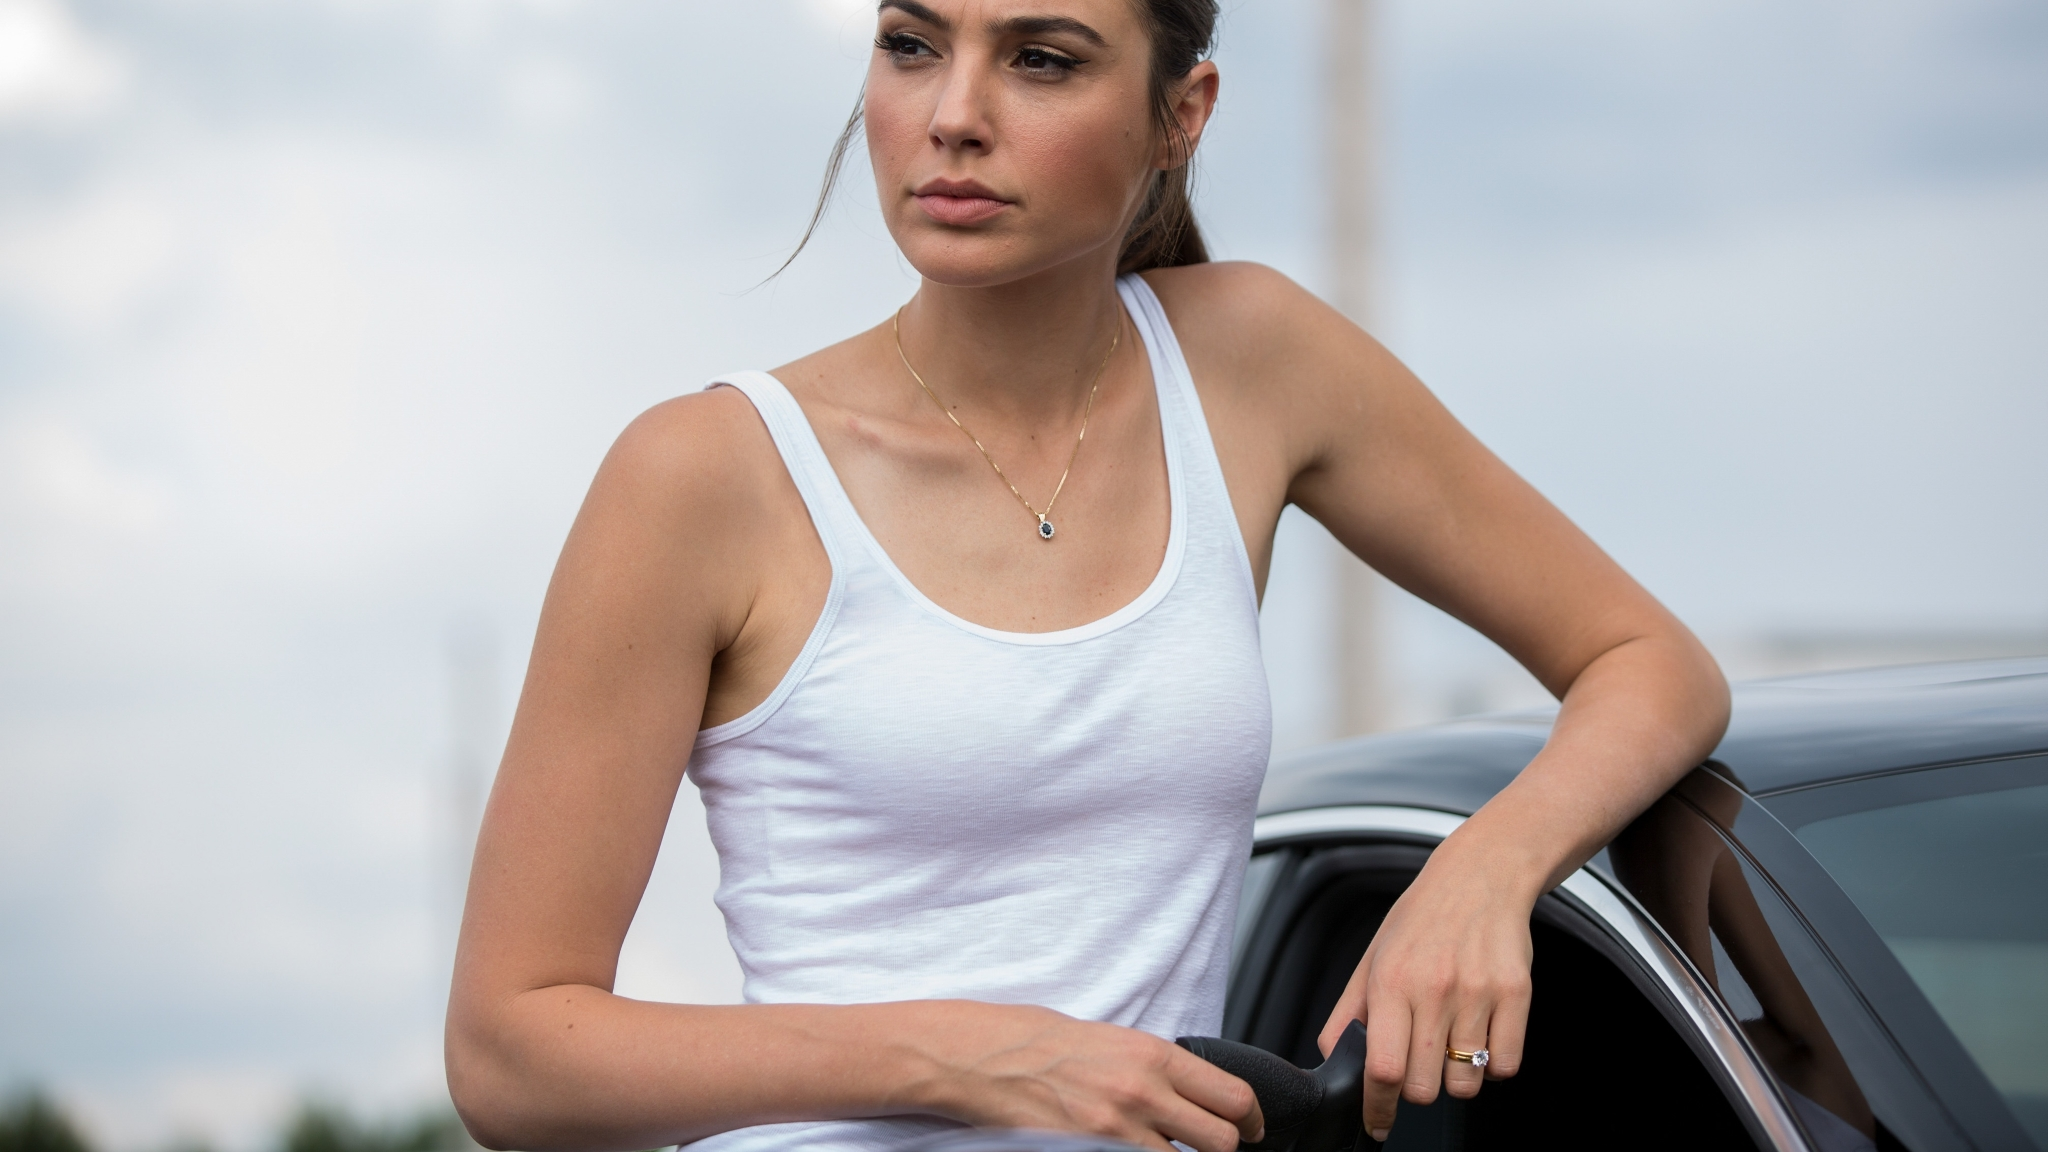 Keeping Up With The Joneses Download: Gal Gadot In Keeping Up With The Joneses, HD 4K Wallpaper